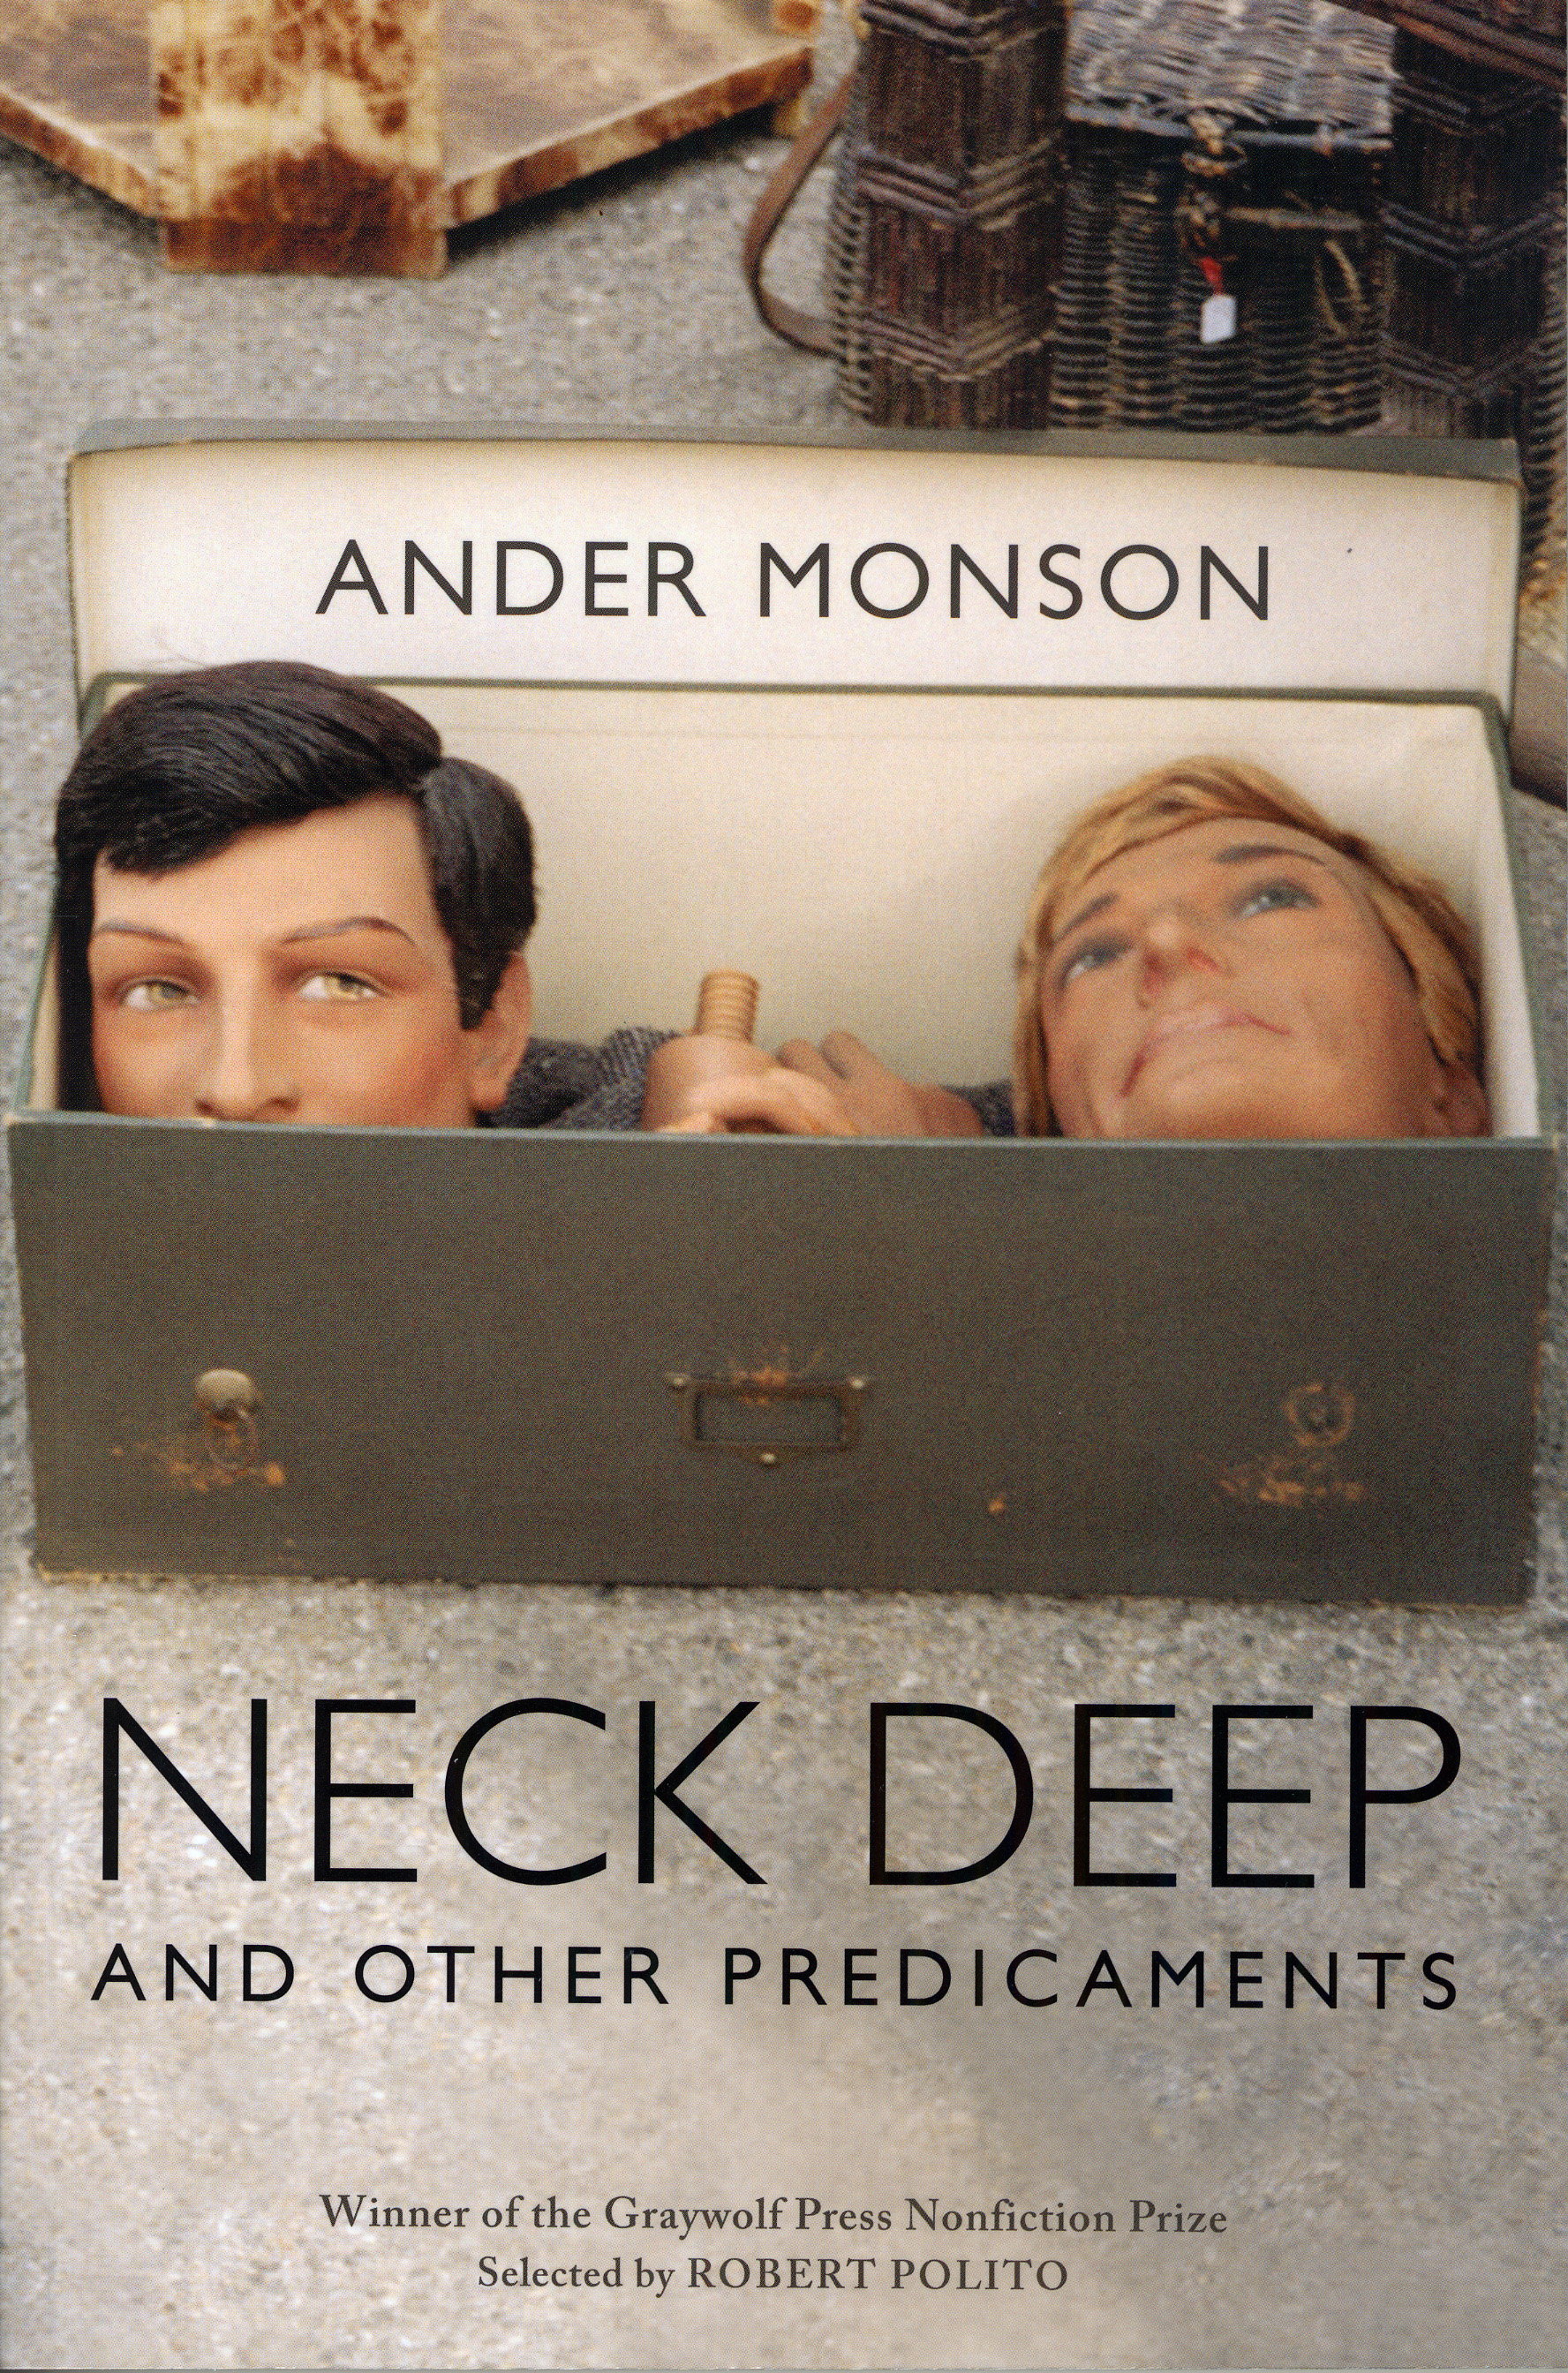 deep essay neck other predicaments Other predicaments essays ebook on their platform neck deep and other predicaments is an innovative and engaging nonfiction debut by an original new voice (publishers weekly) and the winner of the 2006 graywolf press nonfiction prize.